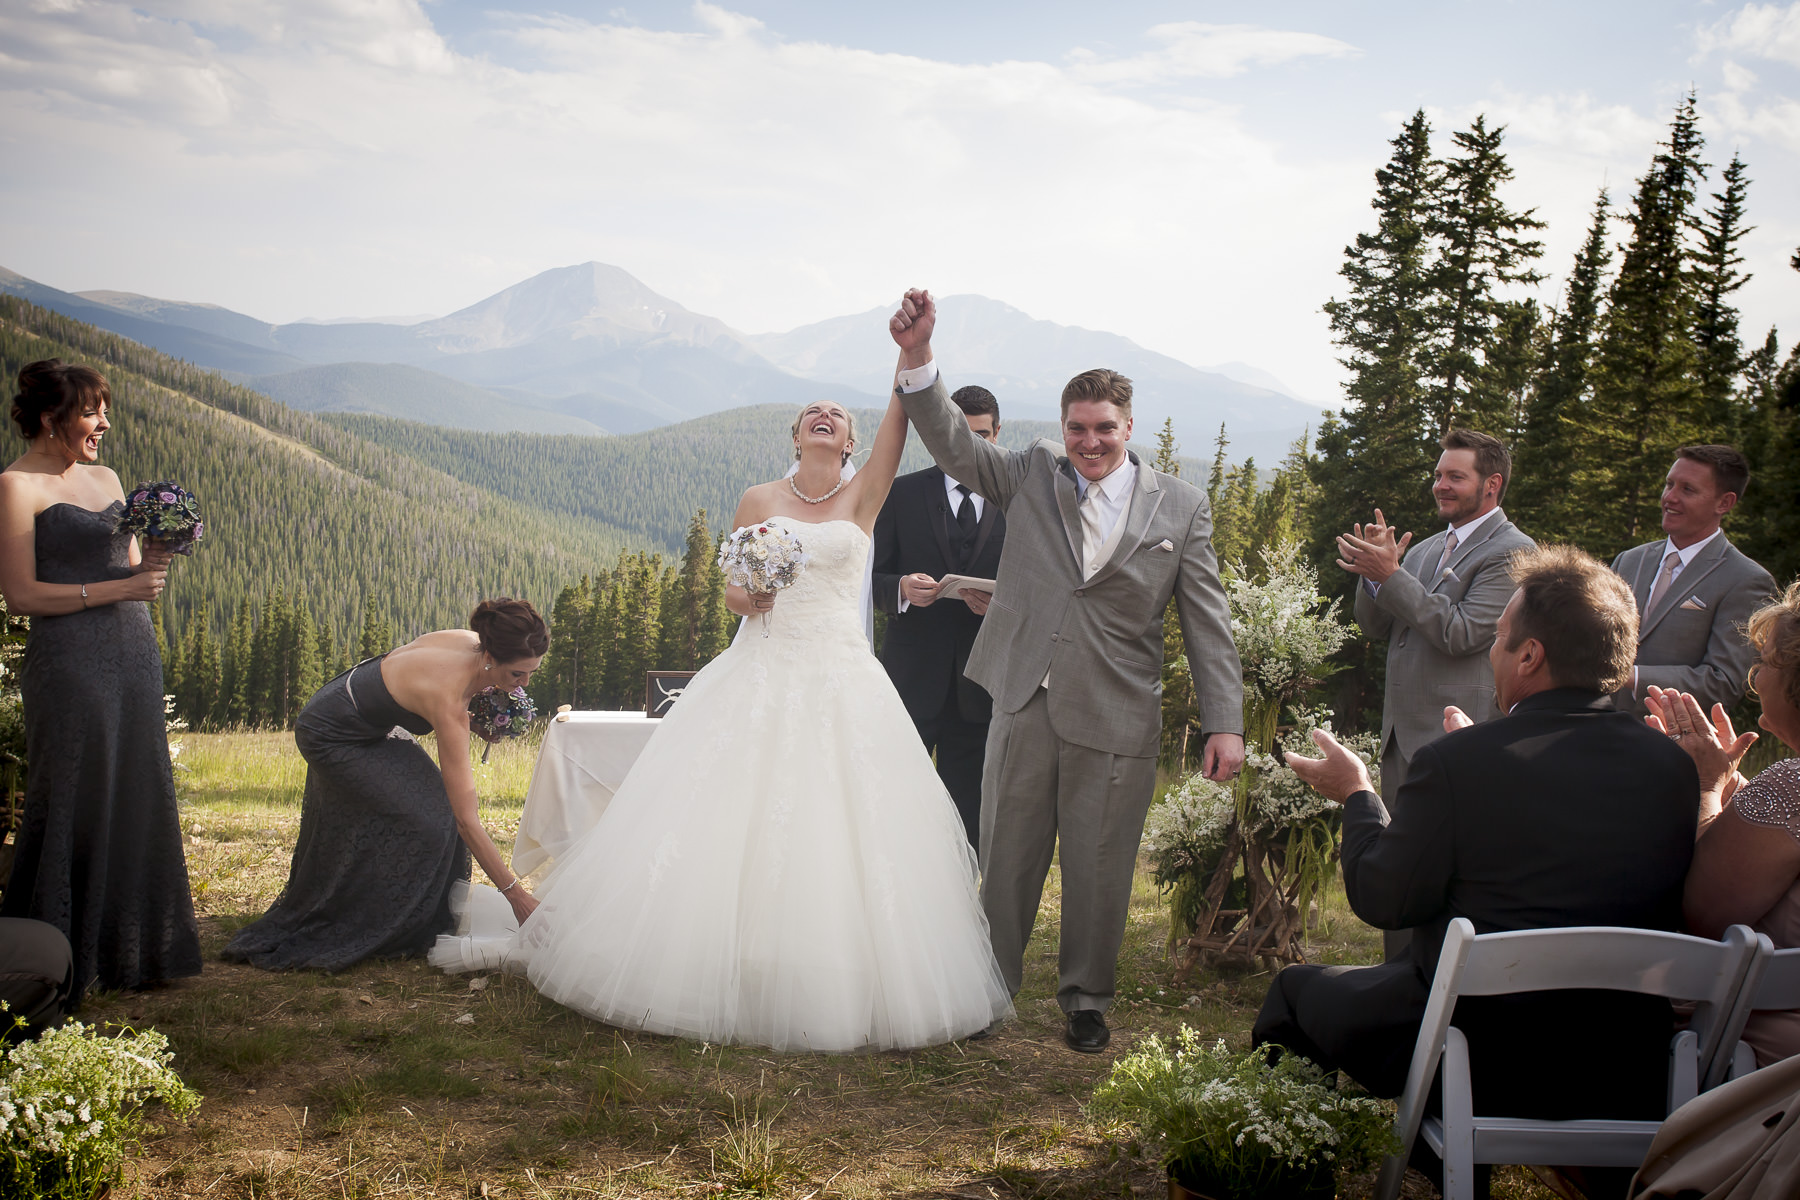 Bride and groom raise their hands into the air at the conclusion of their wedding ceremony at Peak 7 at Keystone Resort.